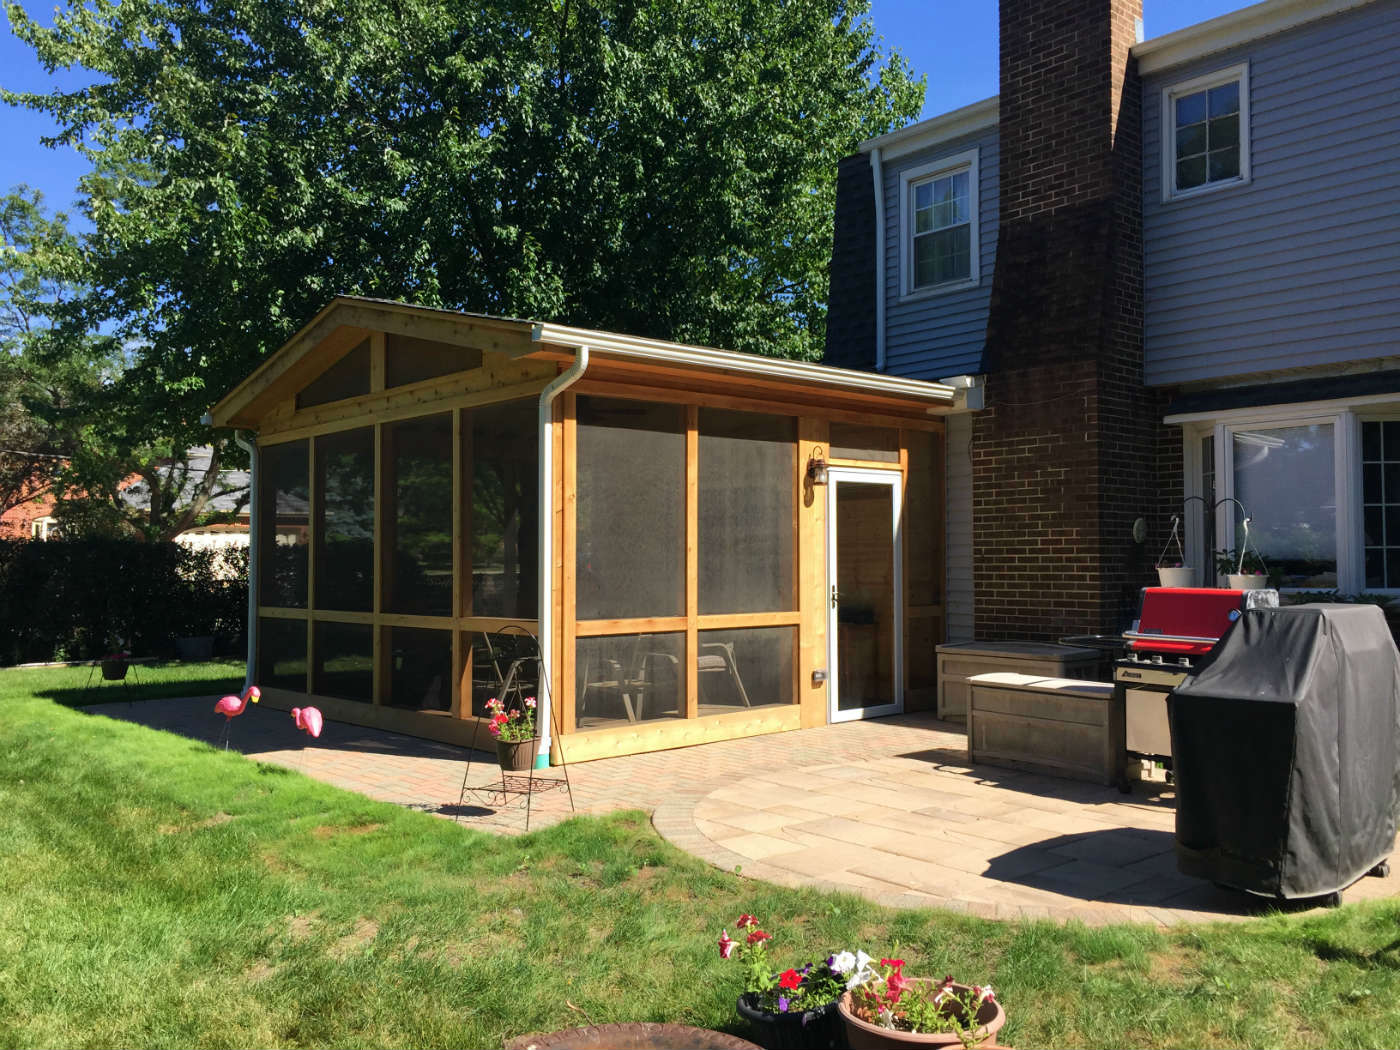 This Combined Screened Porch And Belgard Paver Patio Creates Plenty Of Room  For The Home Owners To Enjoy Grilling On Sunny Afternoons As Well As An  Enclosed ...